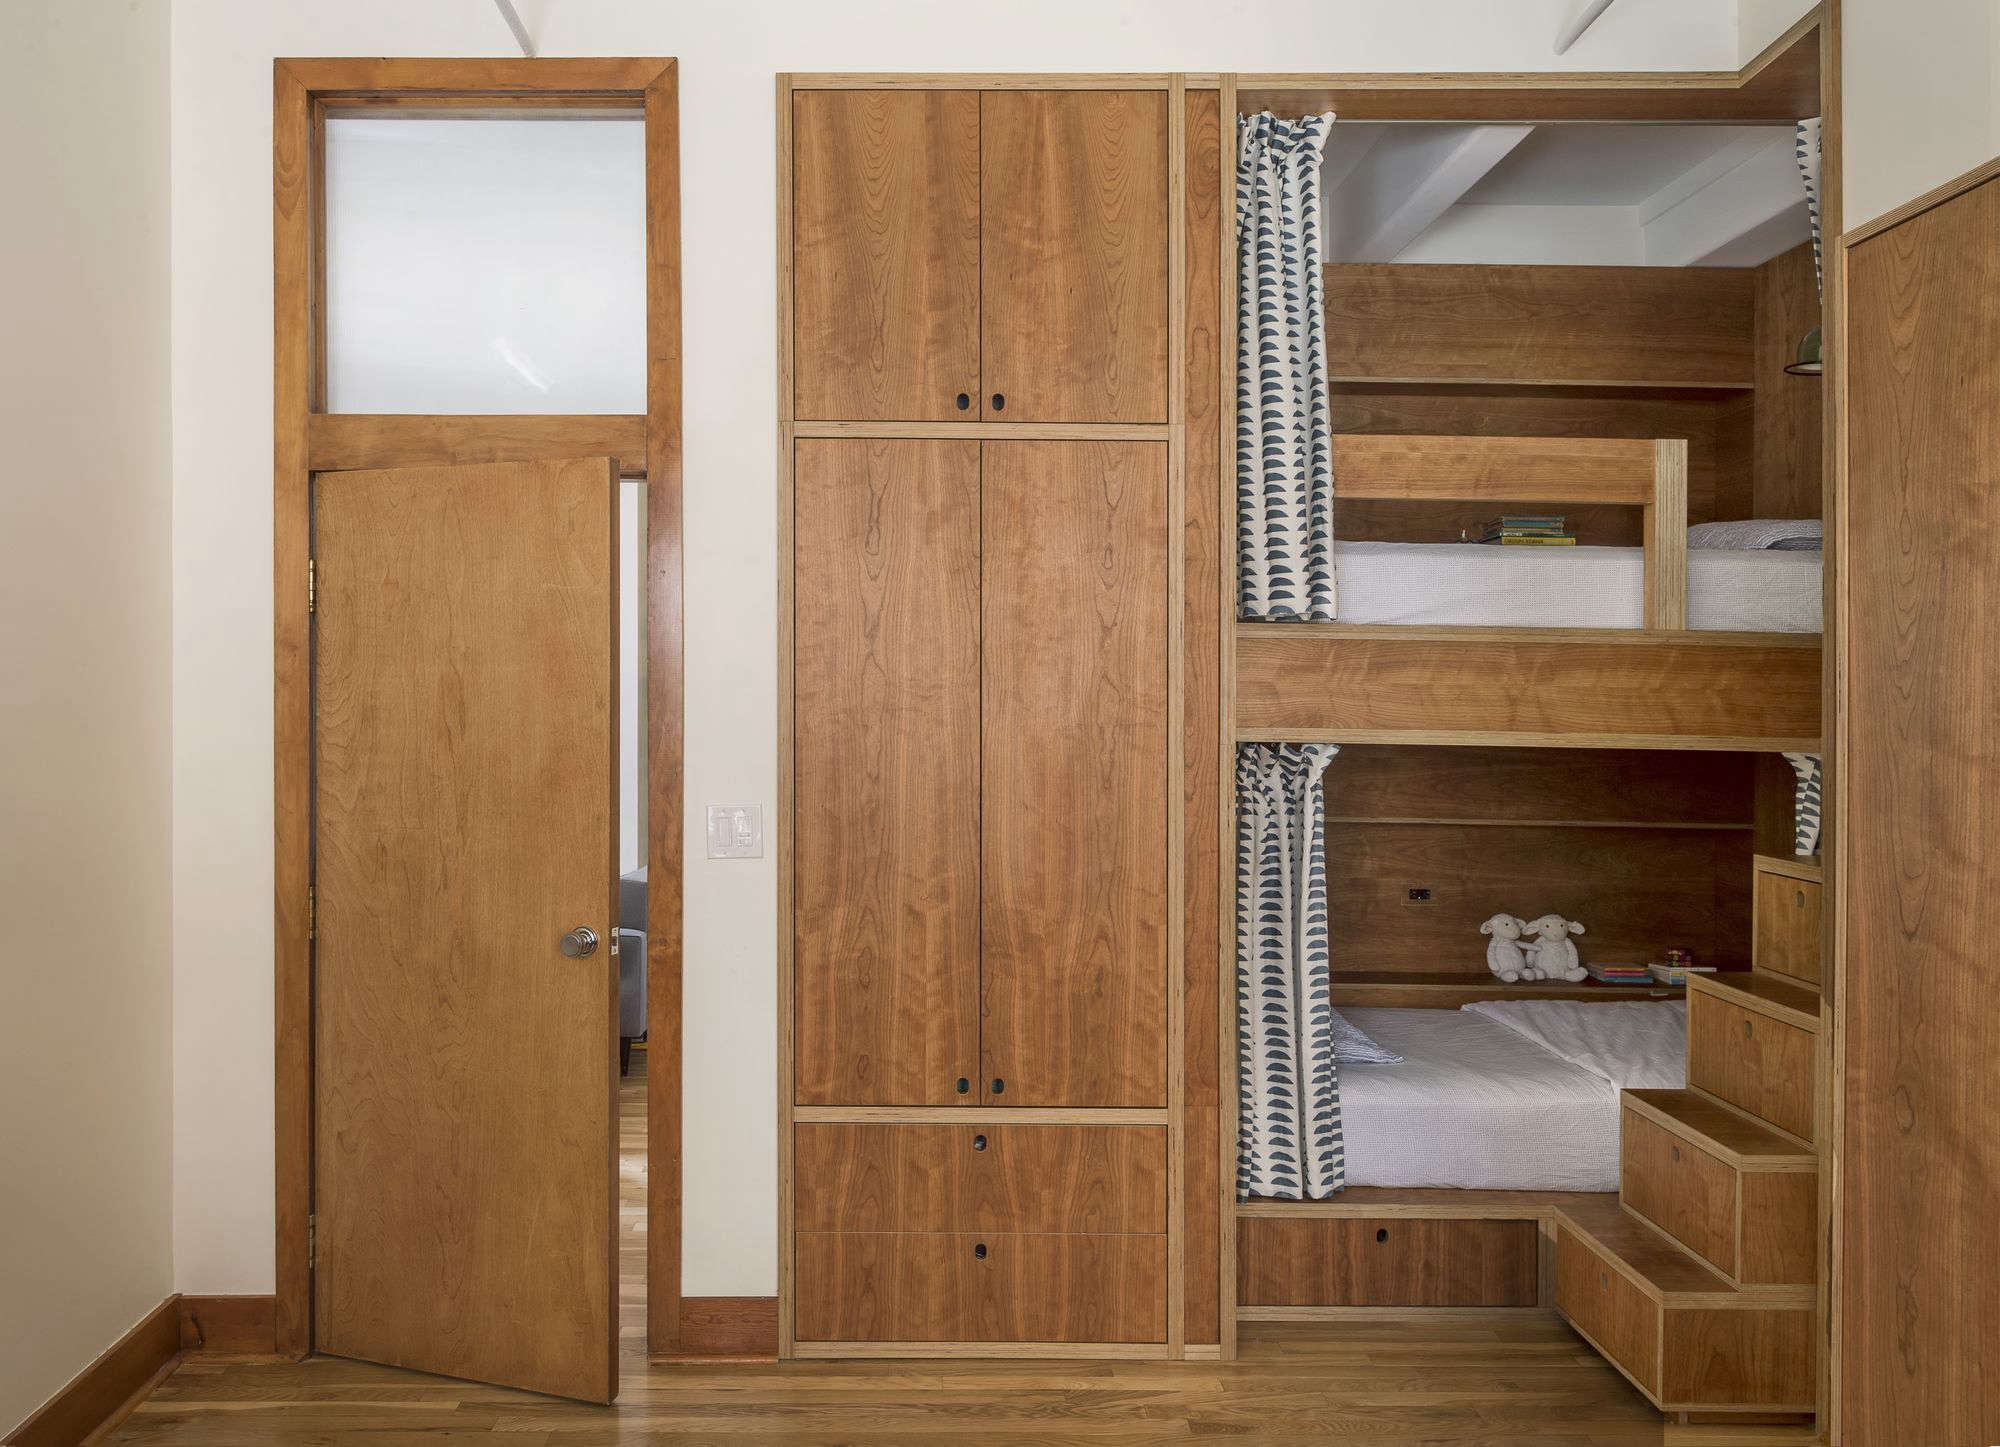 Room To Play: The Ultimate Urban Bunk Room By Workstead